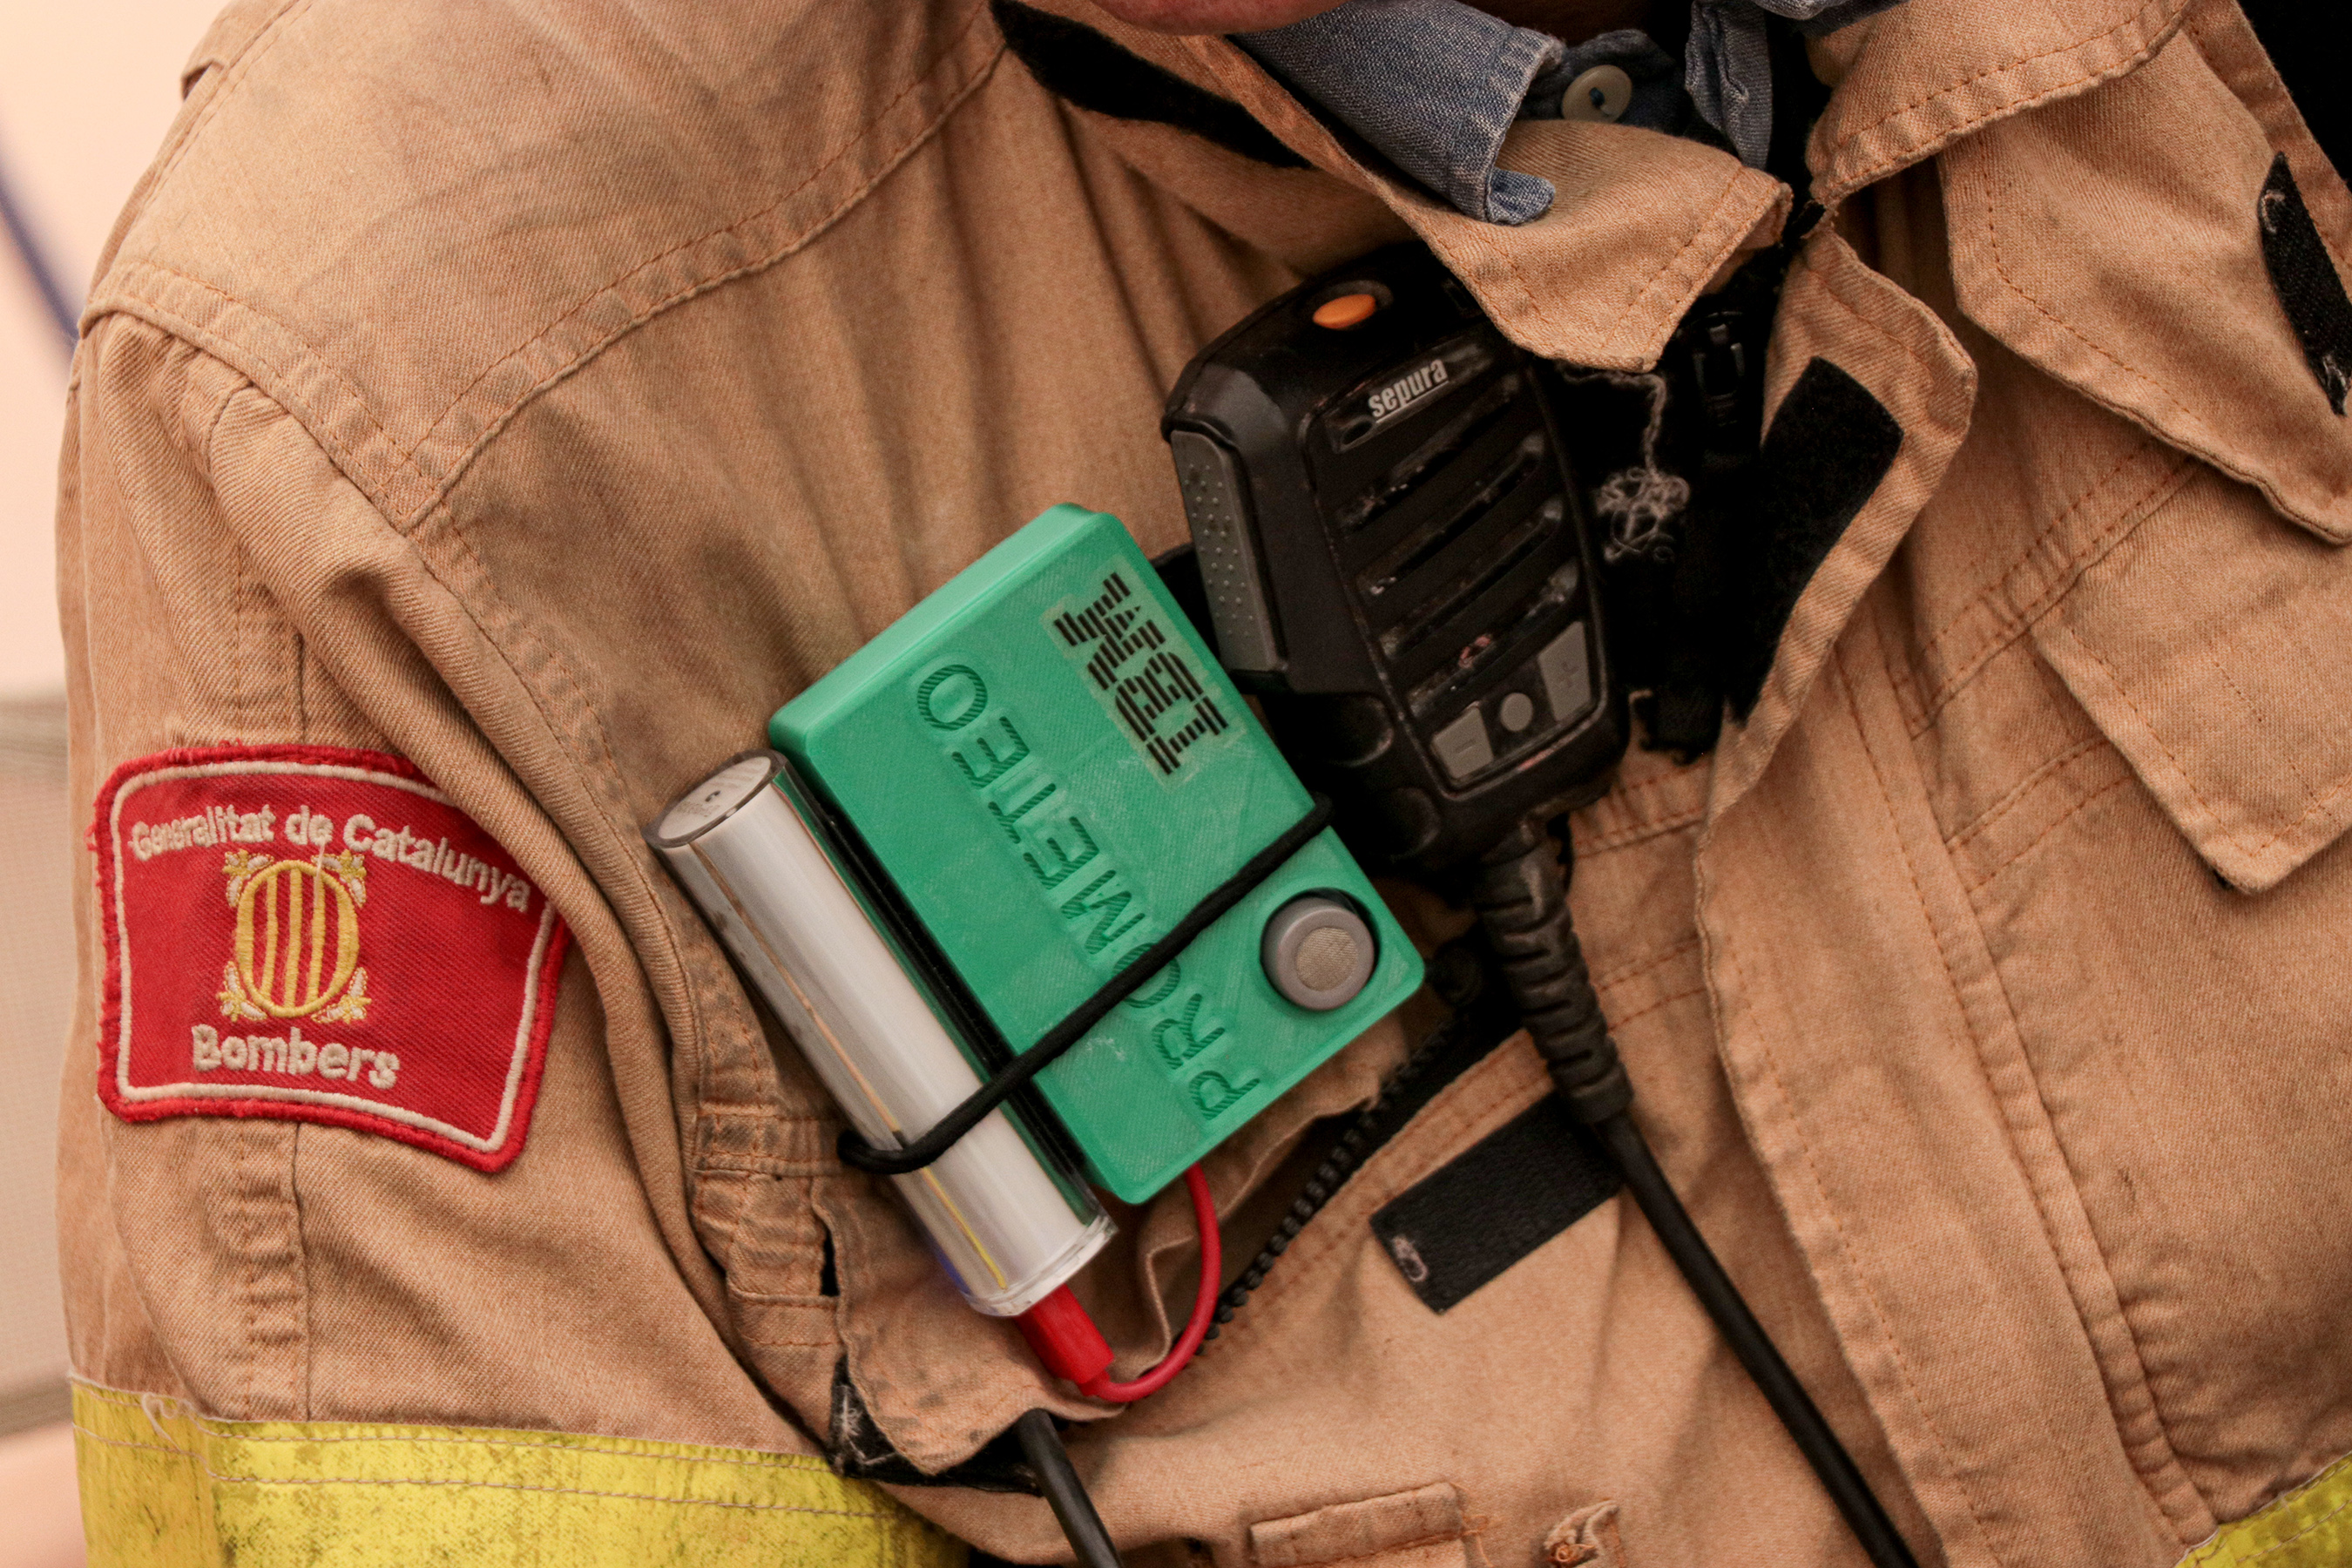 Prometeo's wearable device helps monitor firefighter safety in real-time and aims to help improve health outcomes in the long-term.